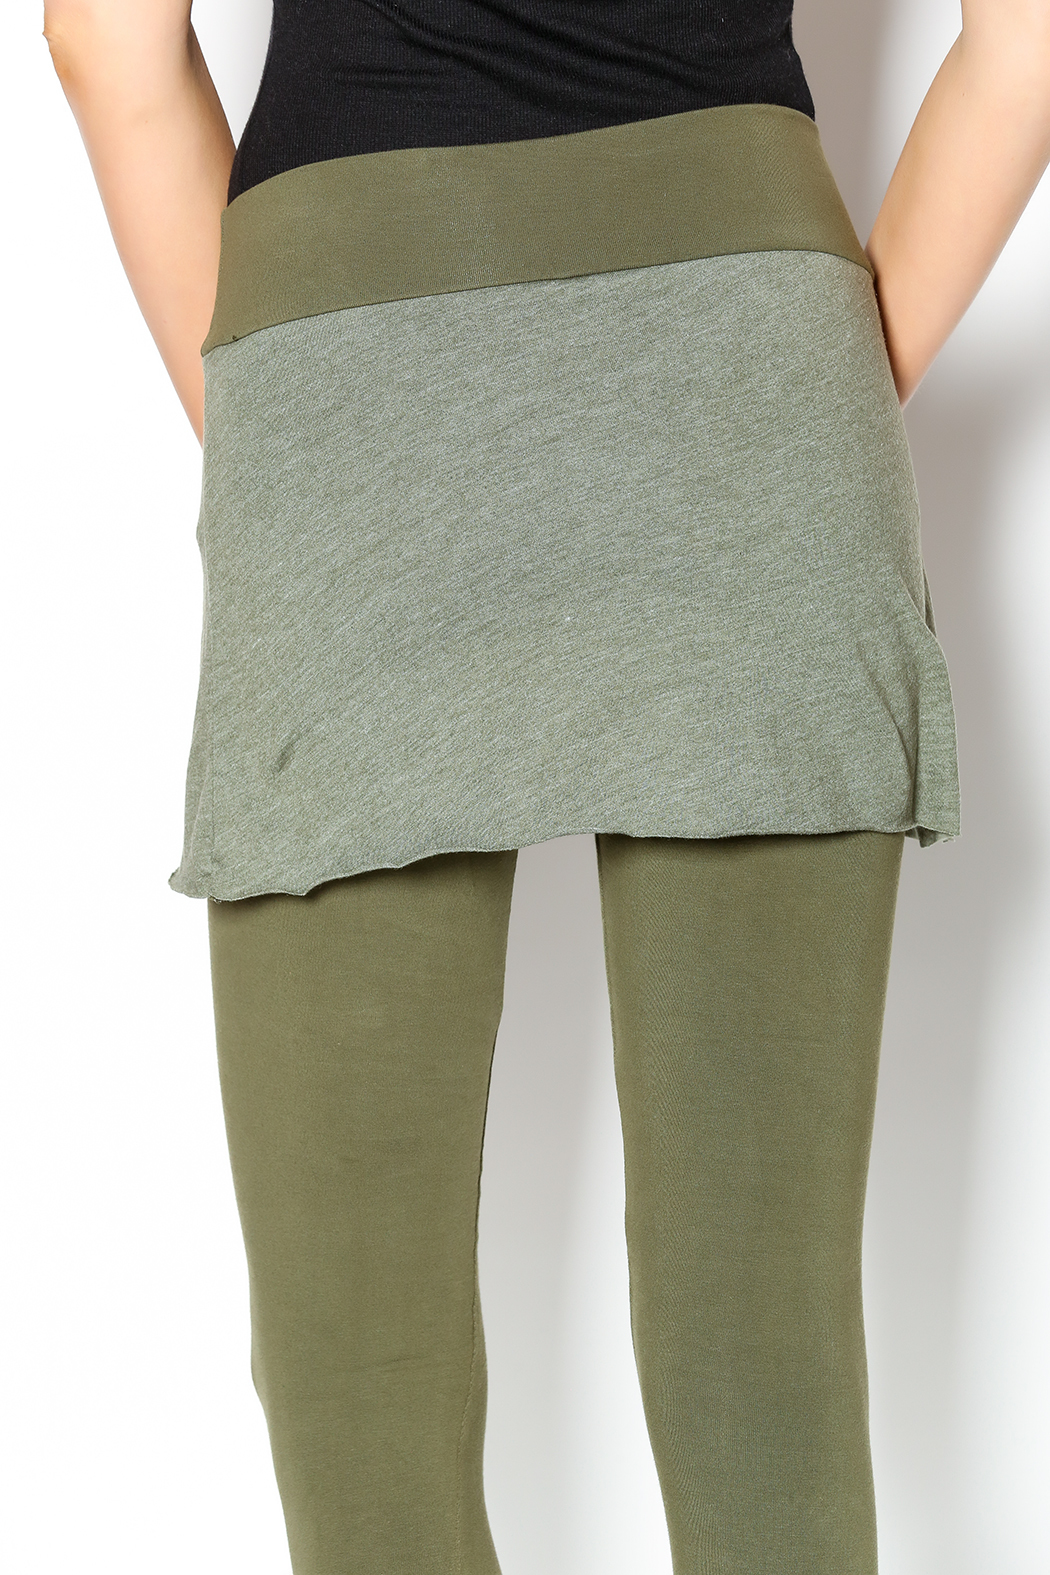 Soul Flower Skirted Legging from Canada by Real Spirit Apparel — Shoptiques